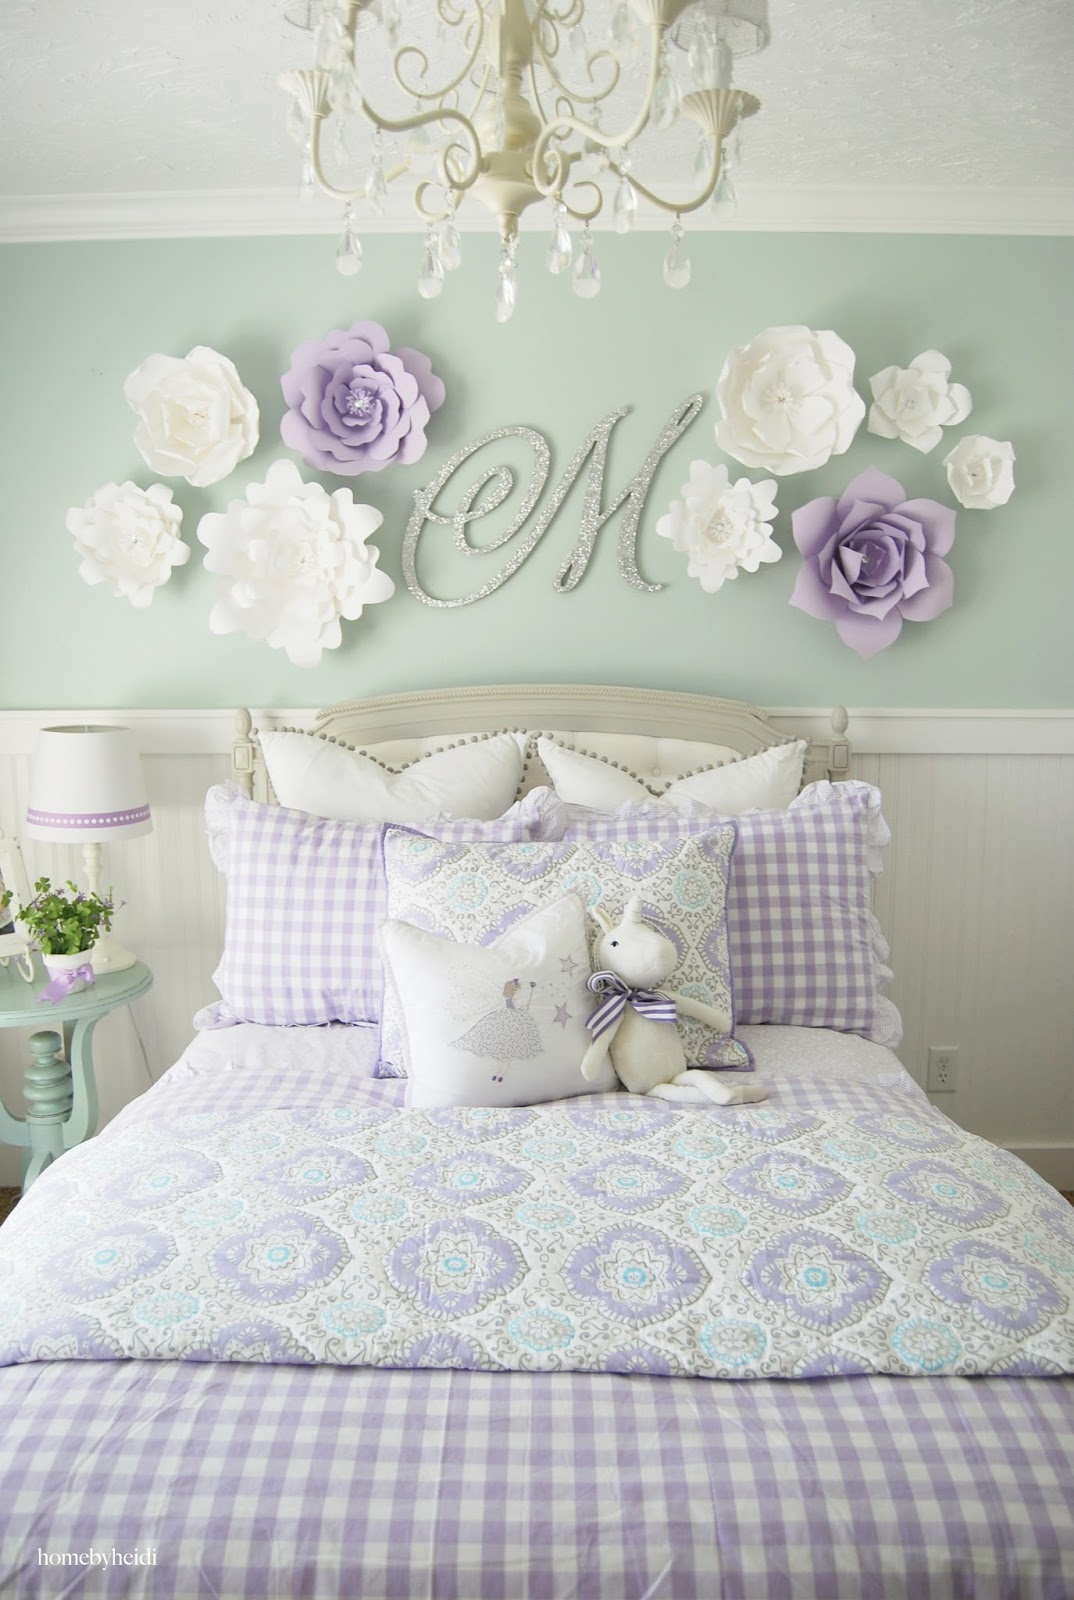 Home by heidi purple turquoise little girls room - Decorating little girls room ...